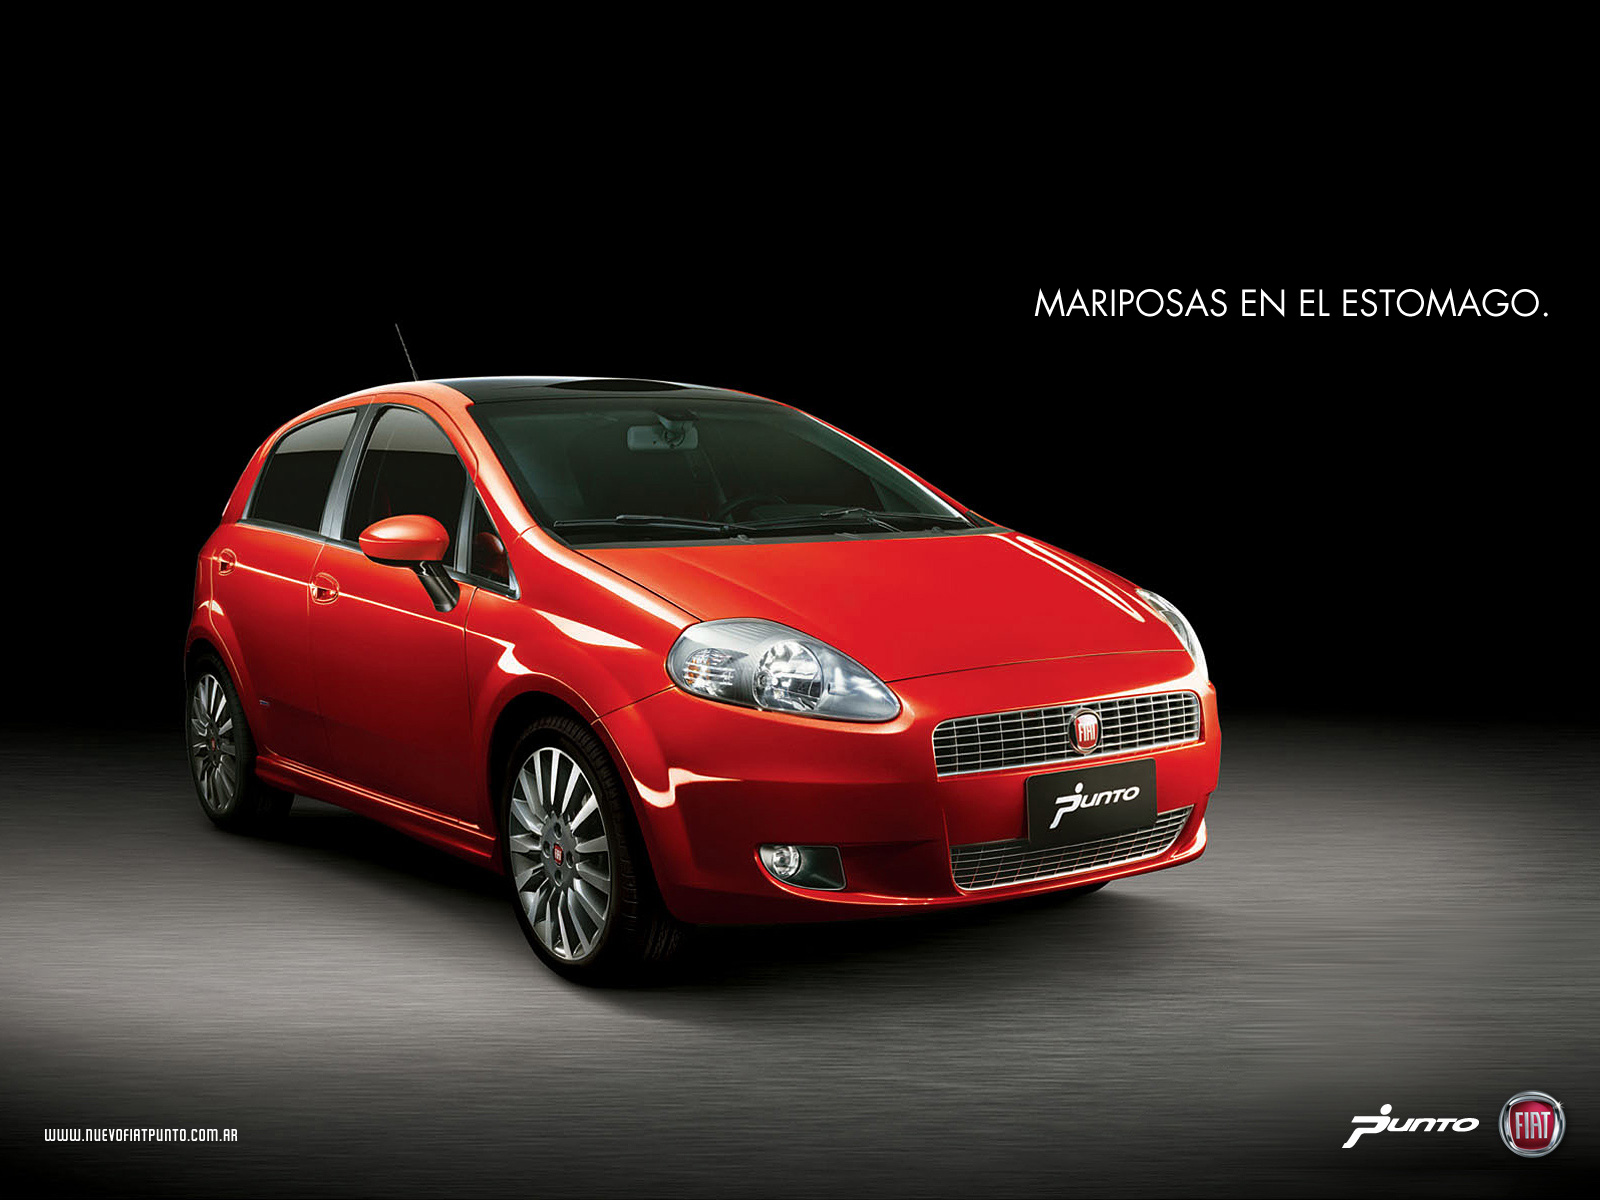 fiat punto 2009 review amazing pictures and images look at the car. Black Bedroom Furniture Sets. Home Design Ideas